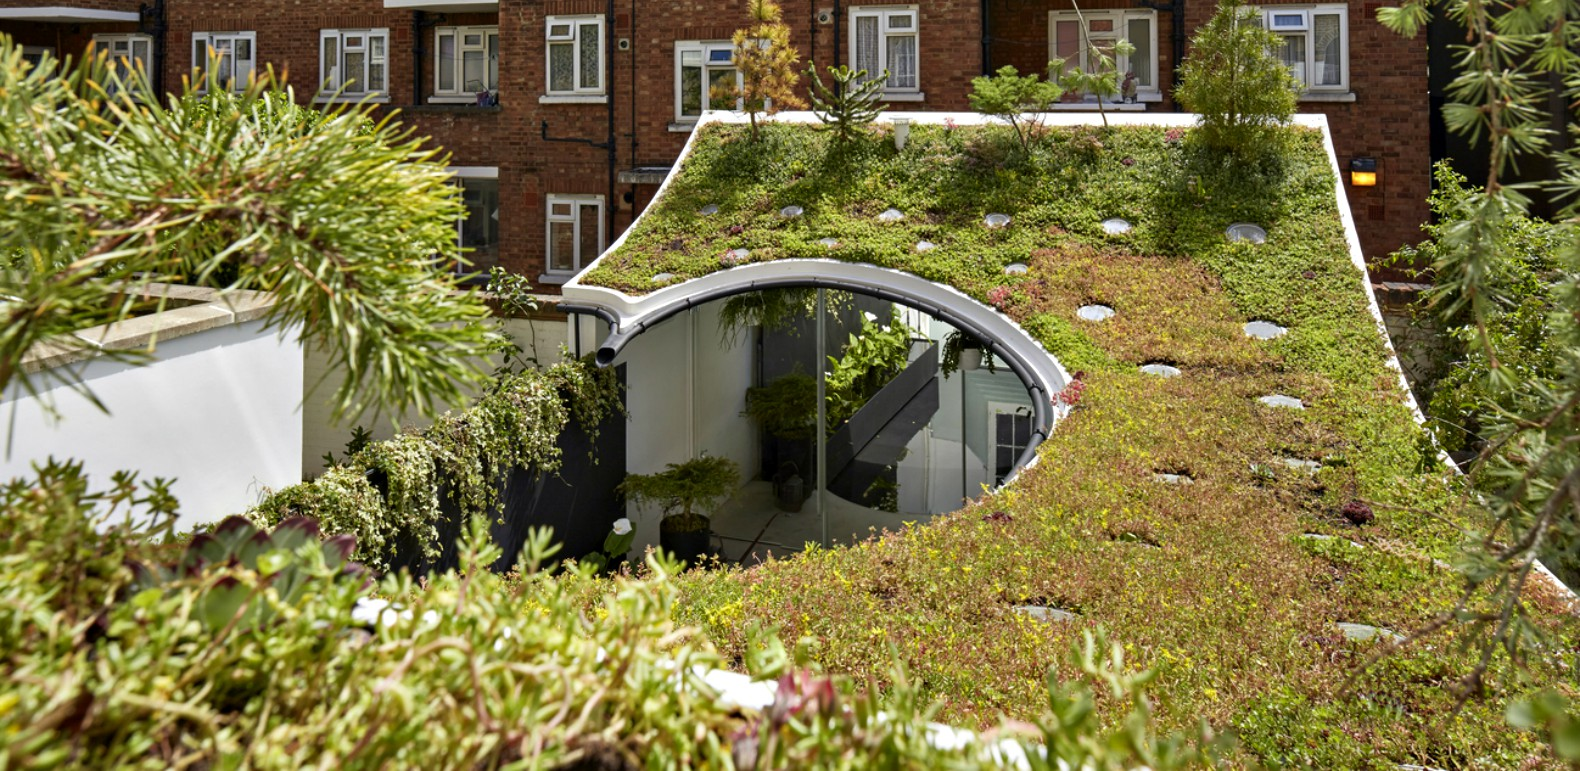 Buildings In Any Region Can Find Advantage In Green Roofs, But City  Environments Are Particularly Good Places To Incorporate These Living Roof  Systems.